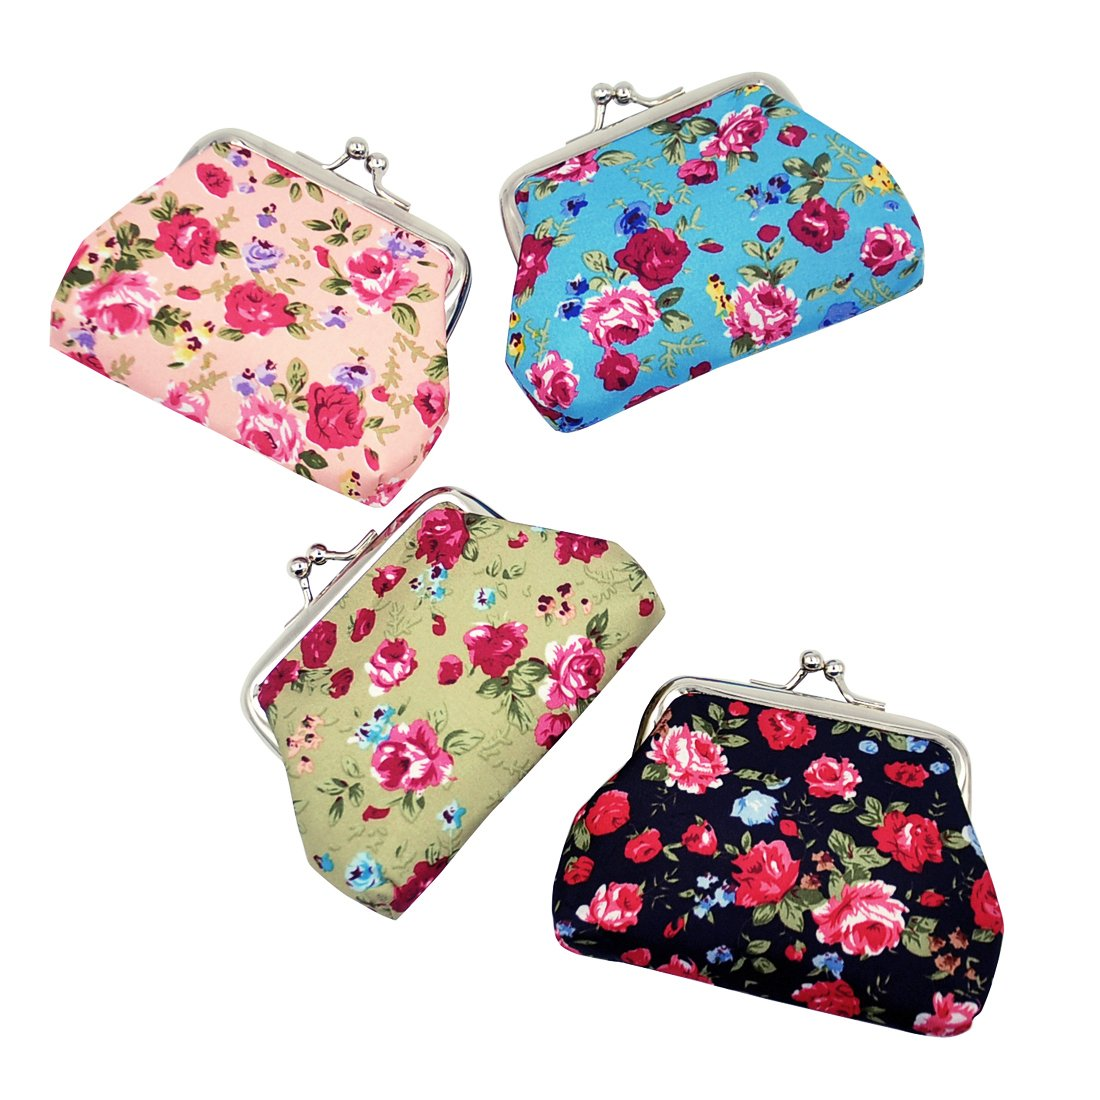 Oyachic 4 Packs Coin Purse with Clasp Kisslock Change Pouch Small Coin Wallet Gift for Women Girls 3.5 L X 2.8 H coin pouch